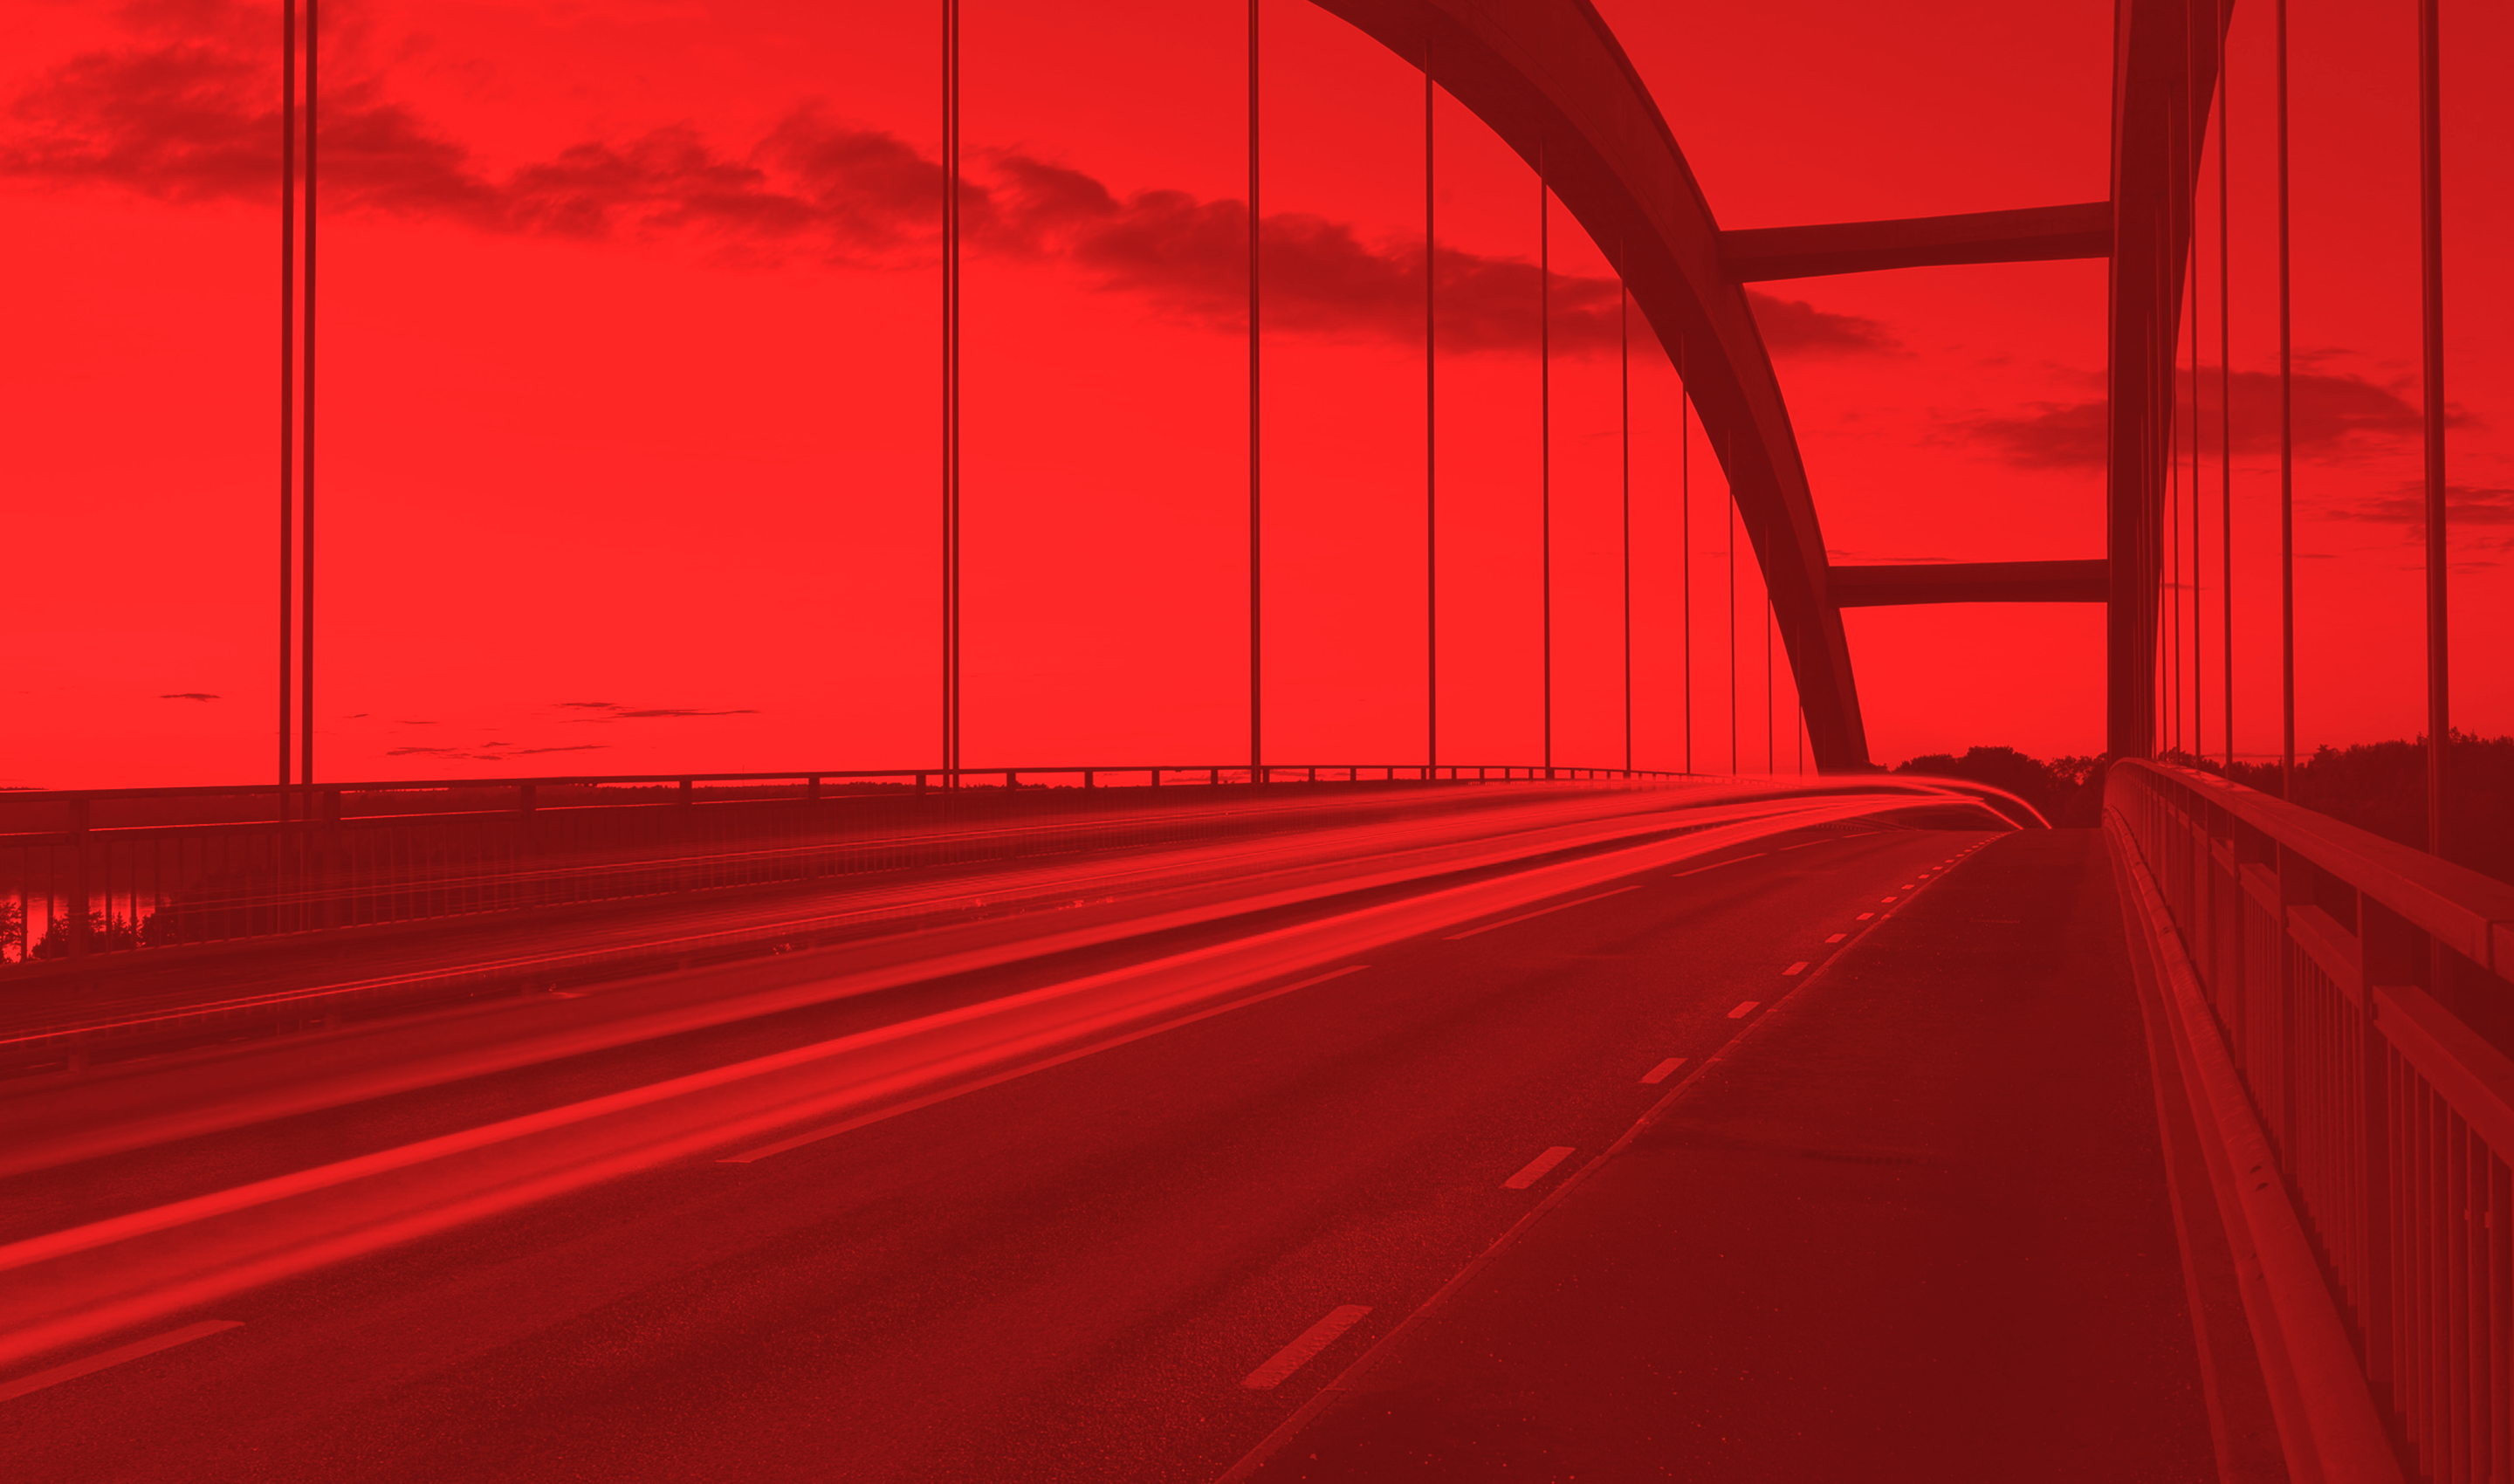 highway bridge with vehicles moving across it with a red mask